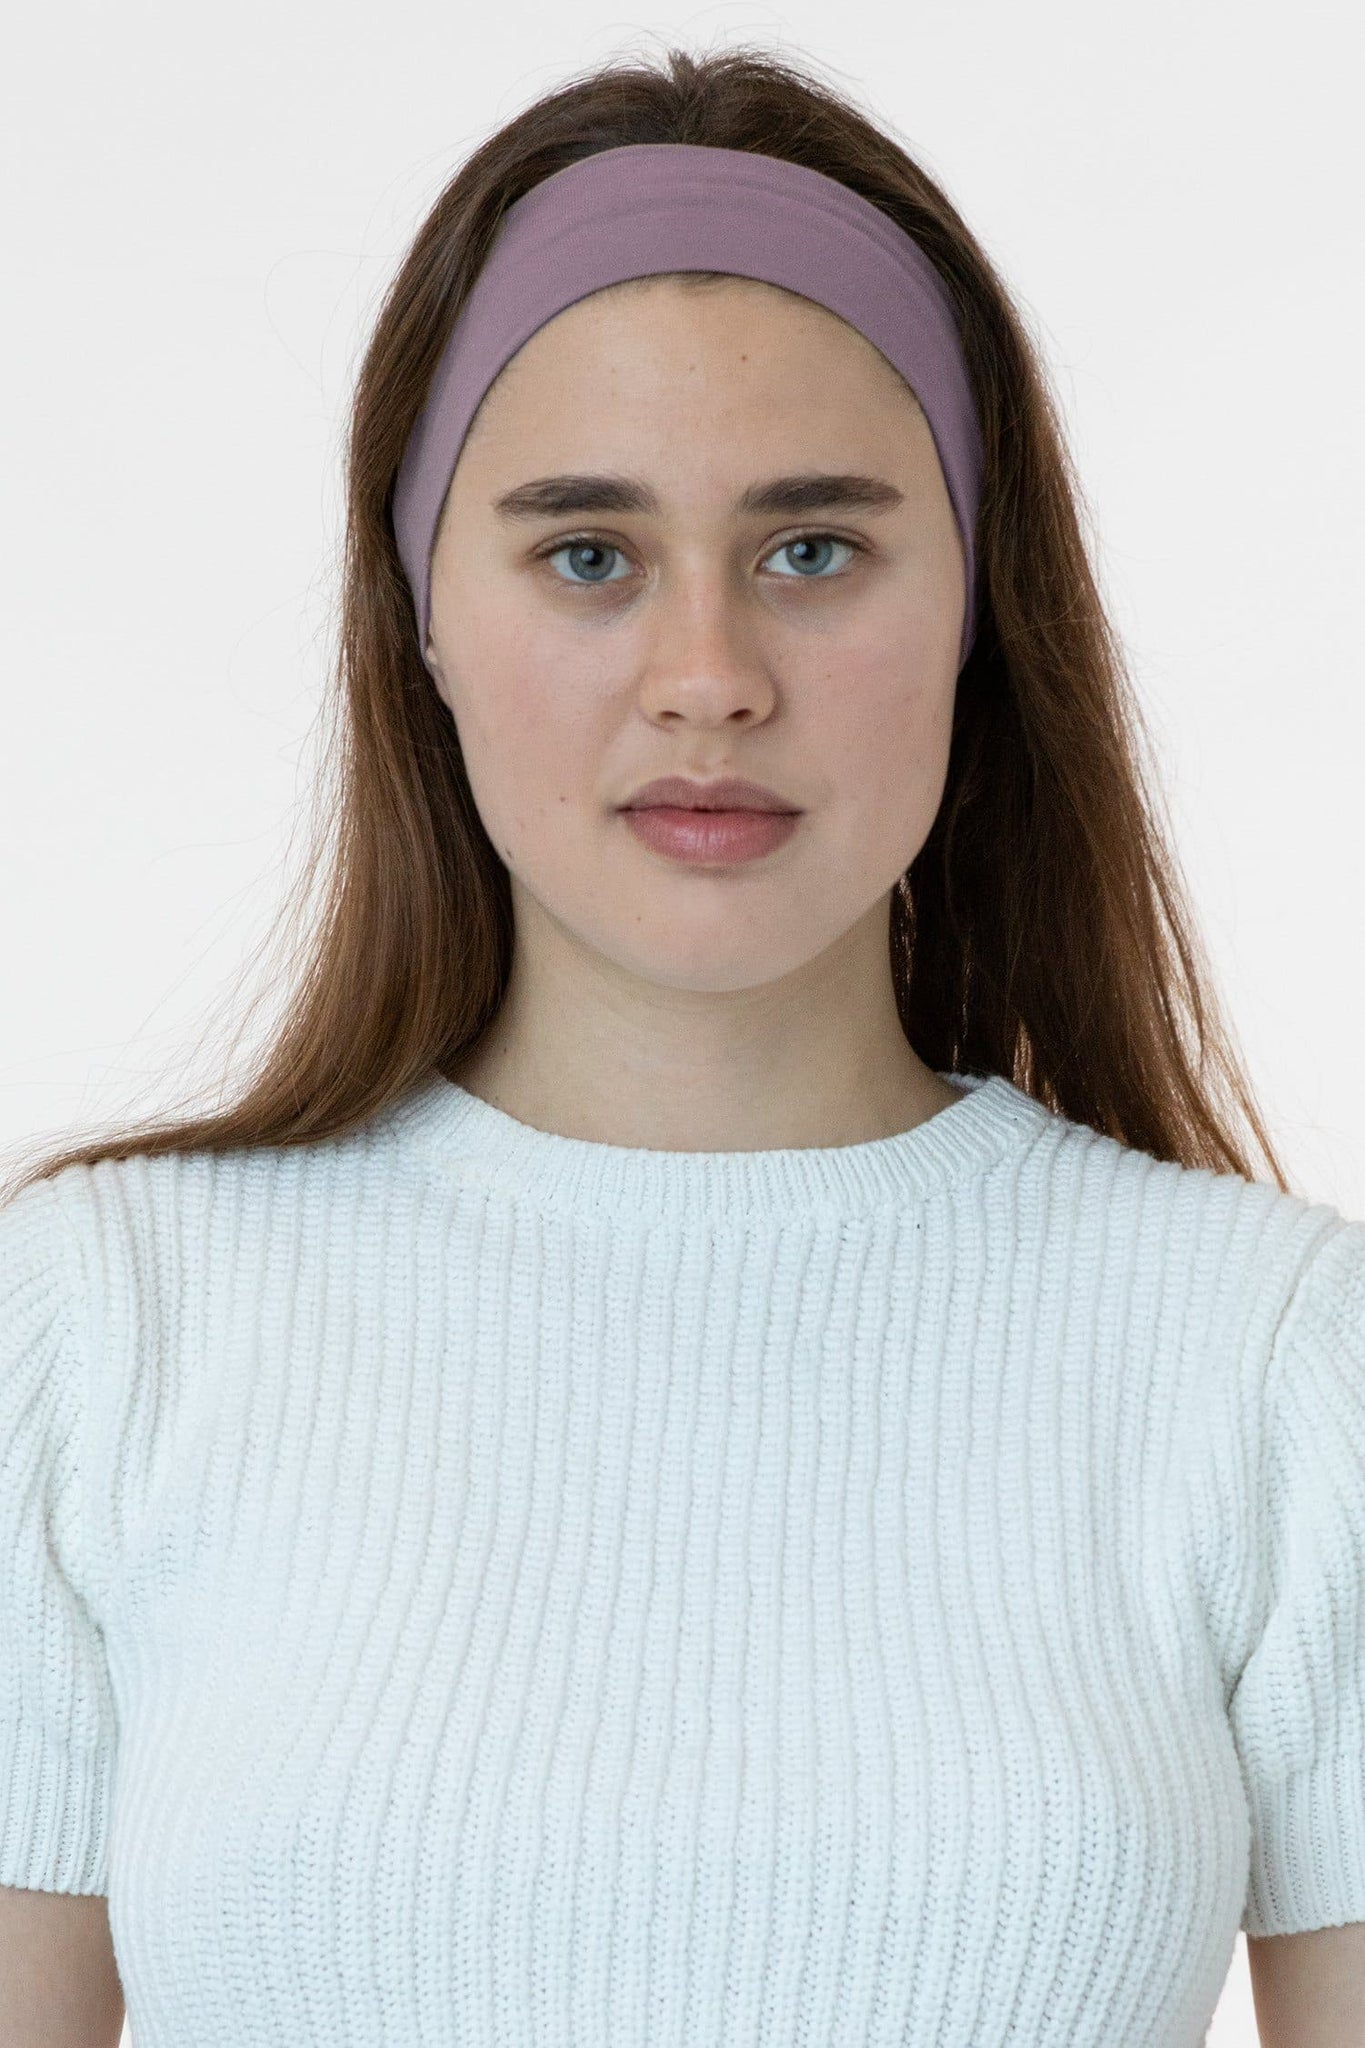 84037 - Cotton Spandex Headband